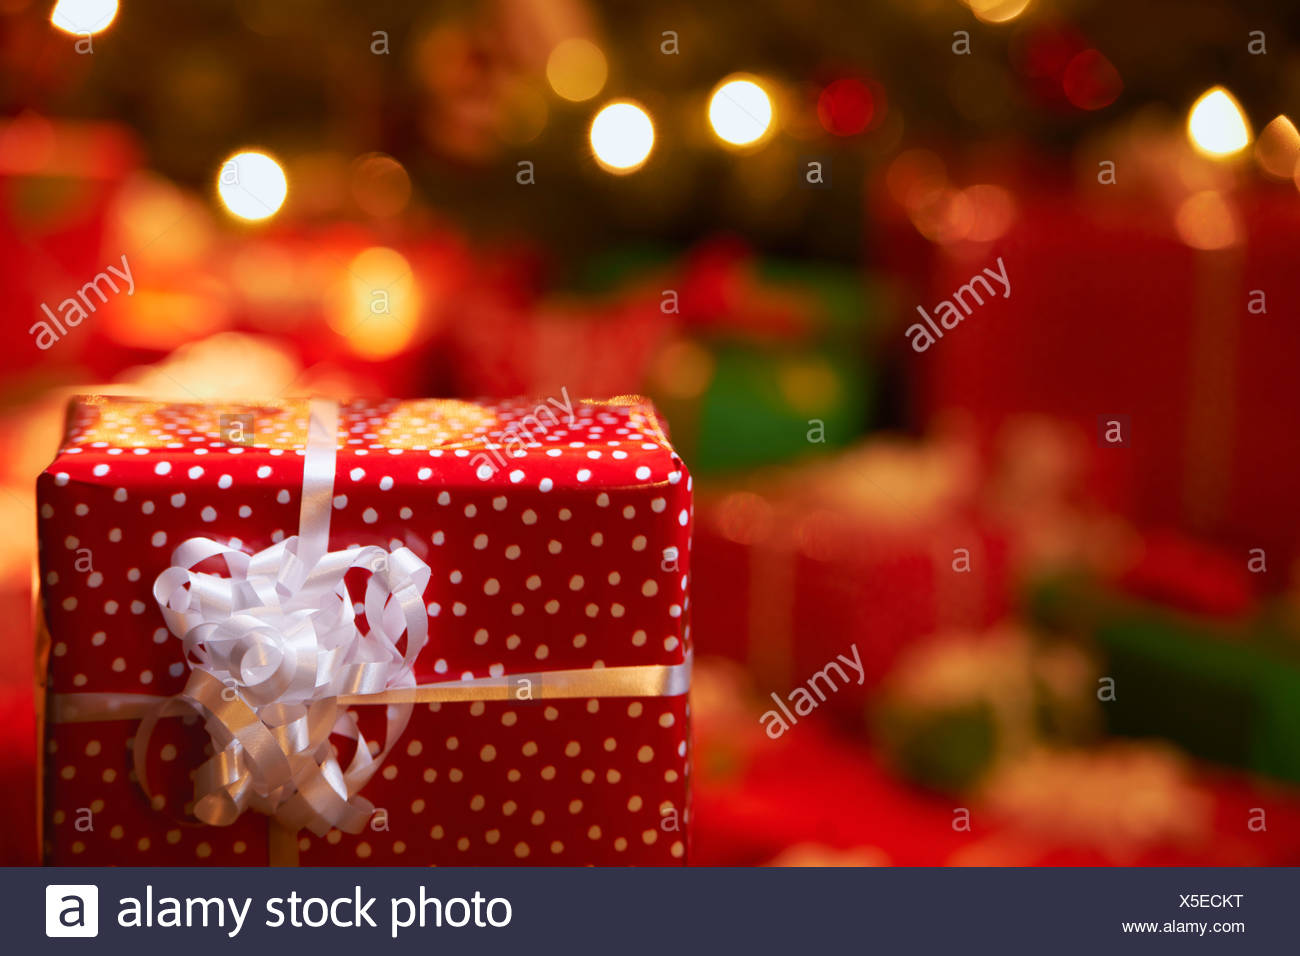 Close up of wrapped Christmas Gift Photo Stock